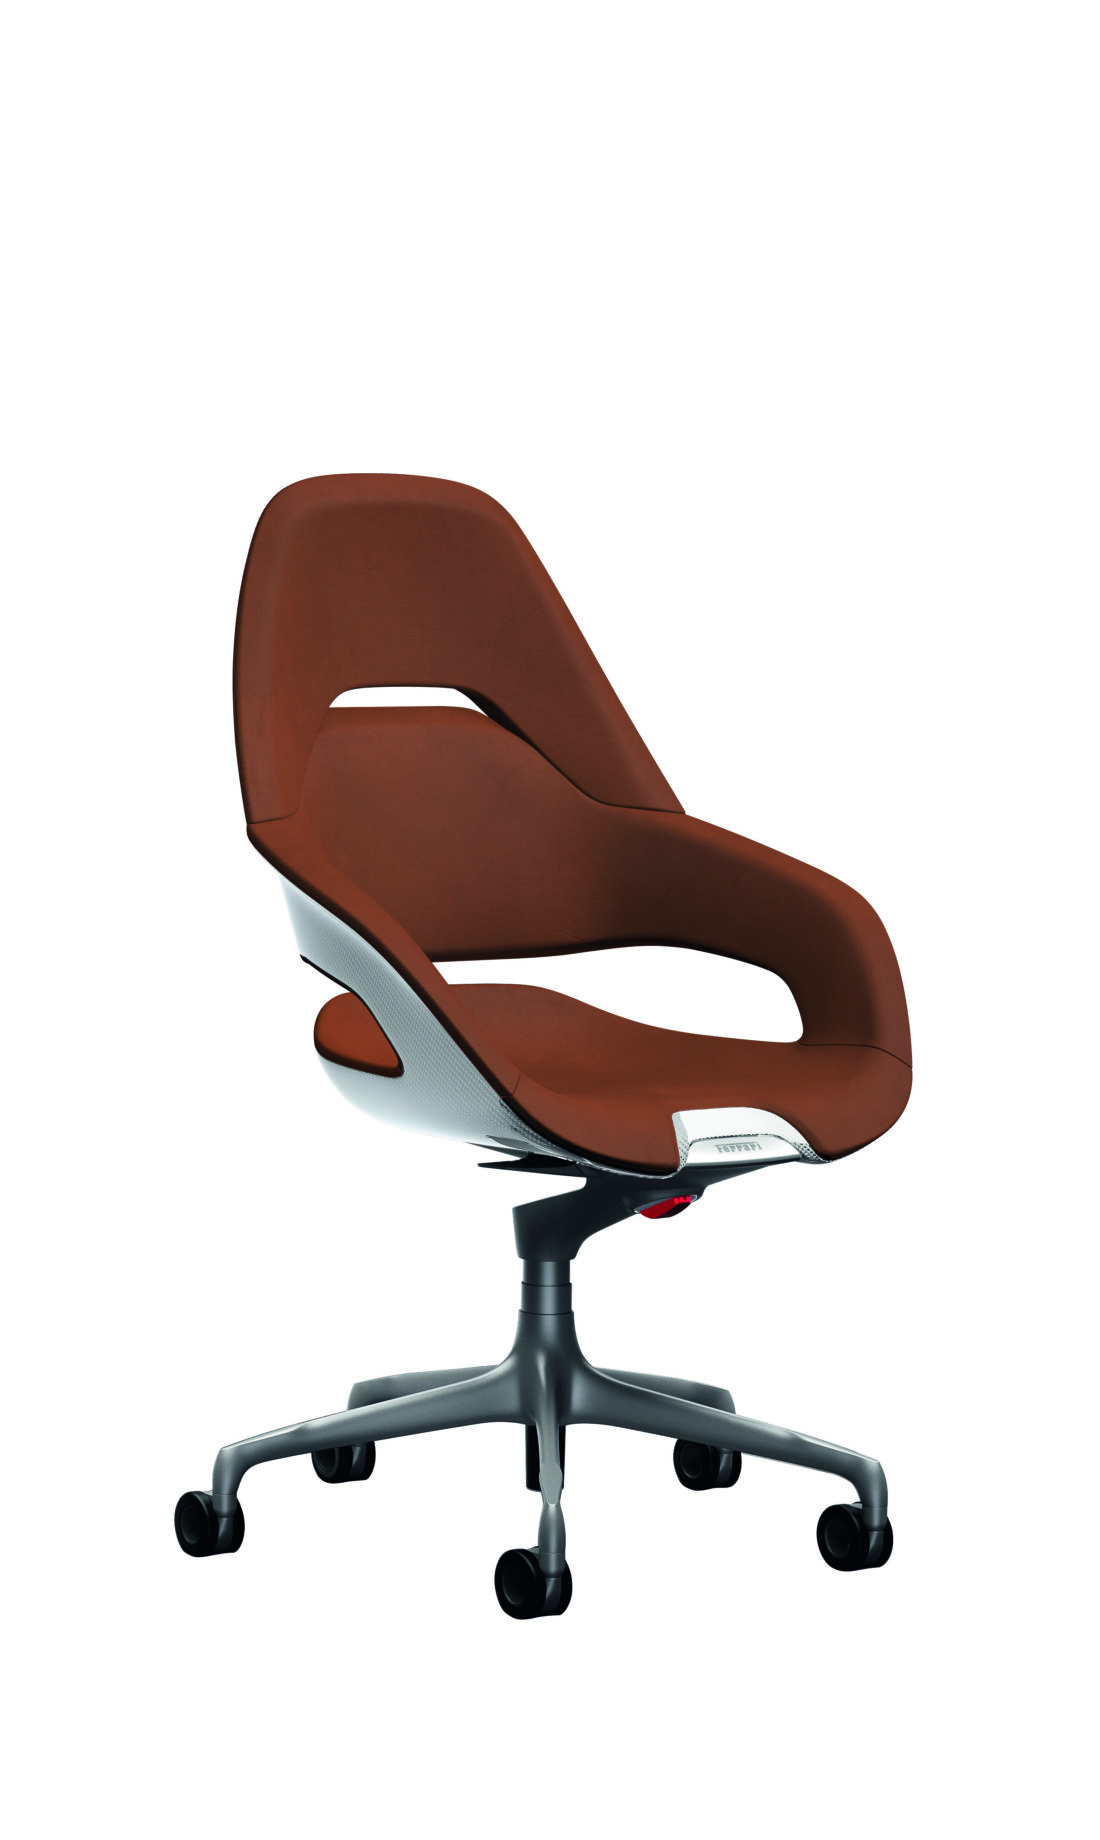 The Executive model with narrow backrest